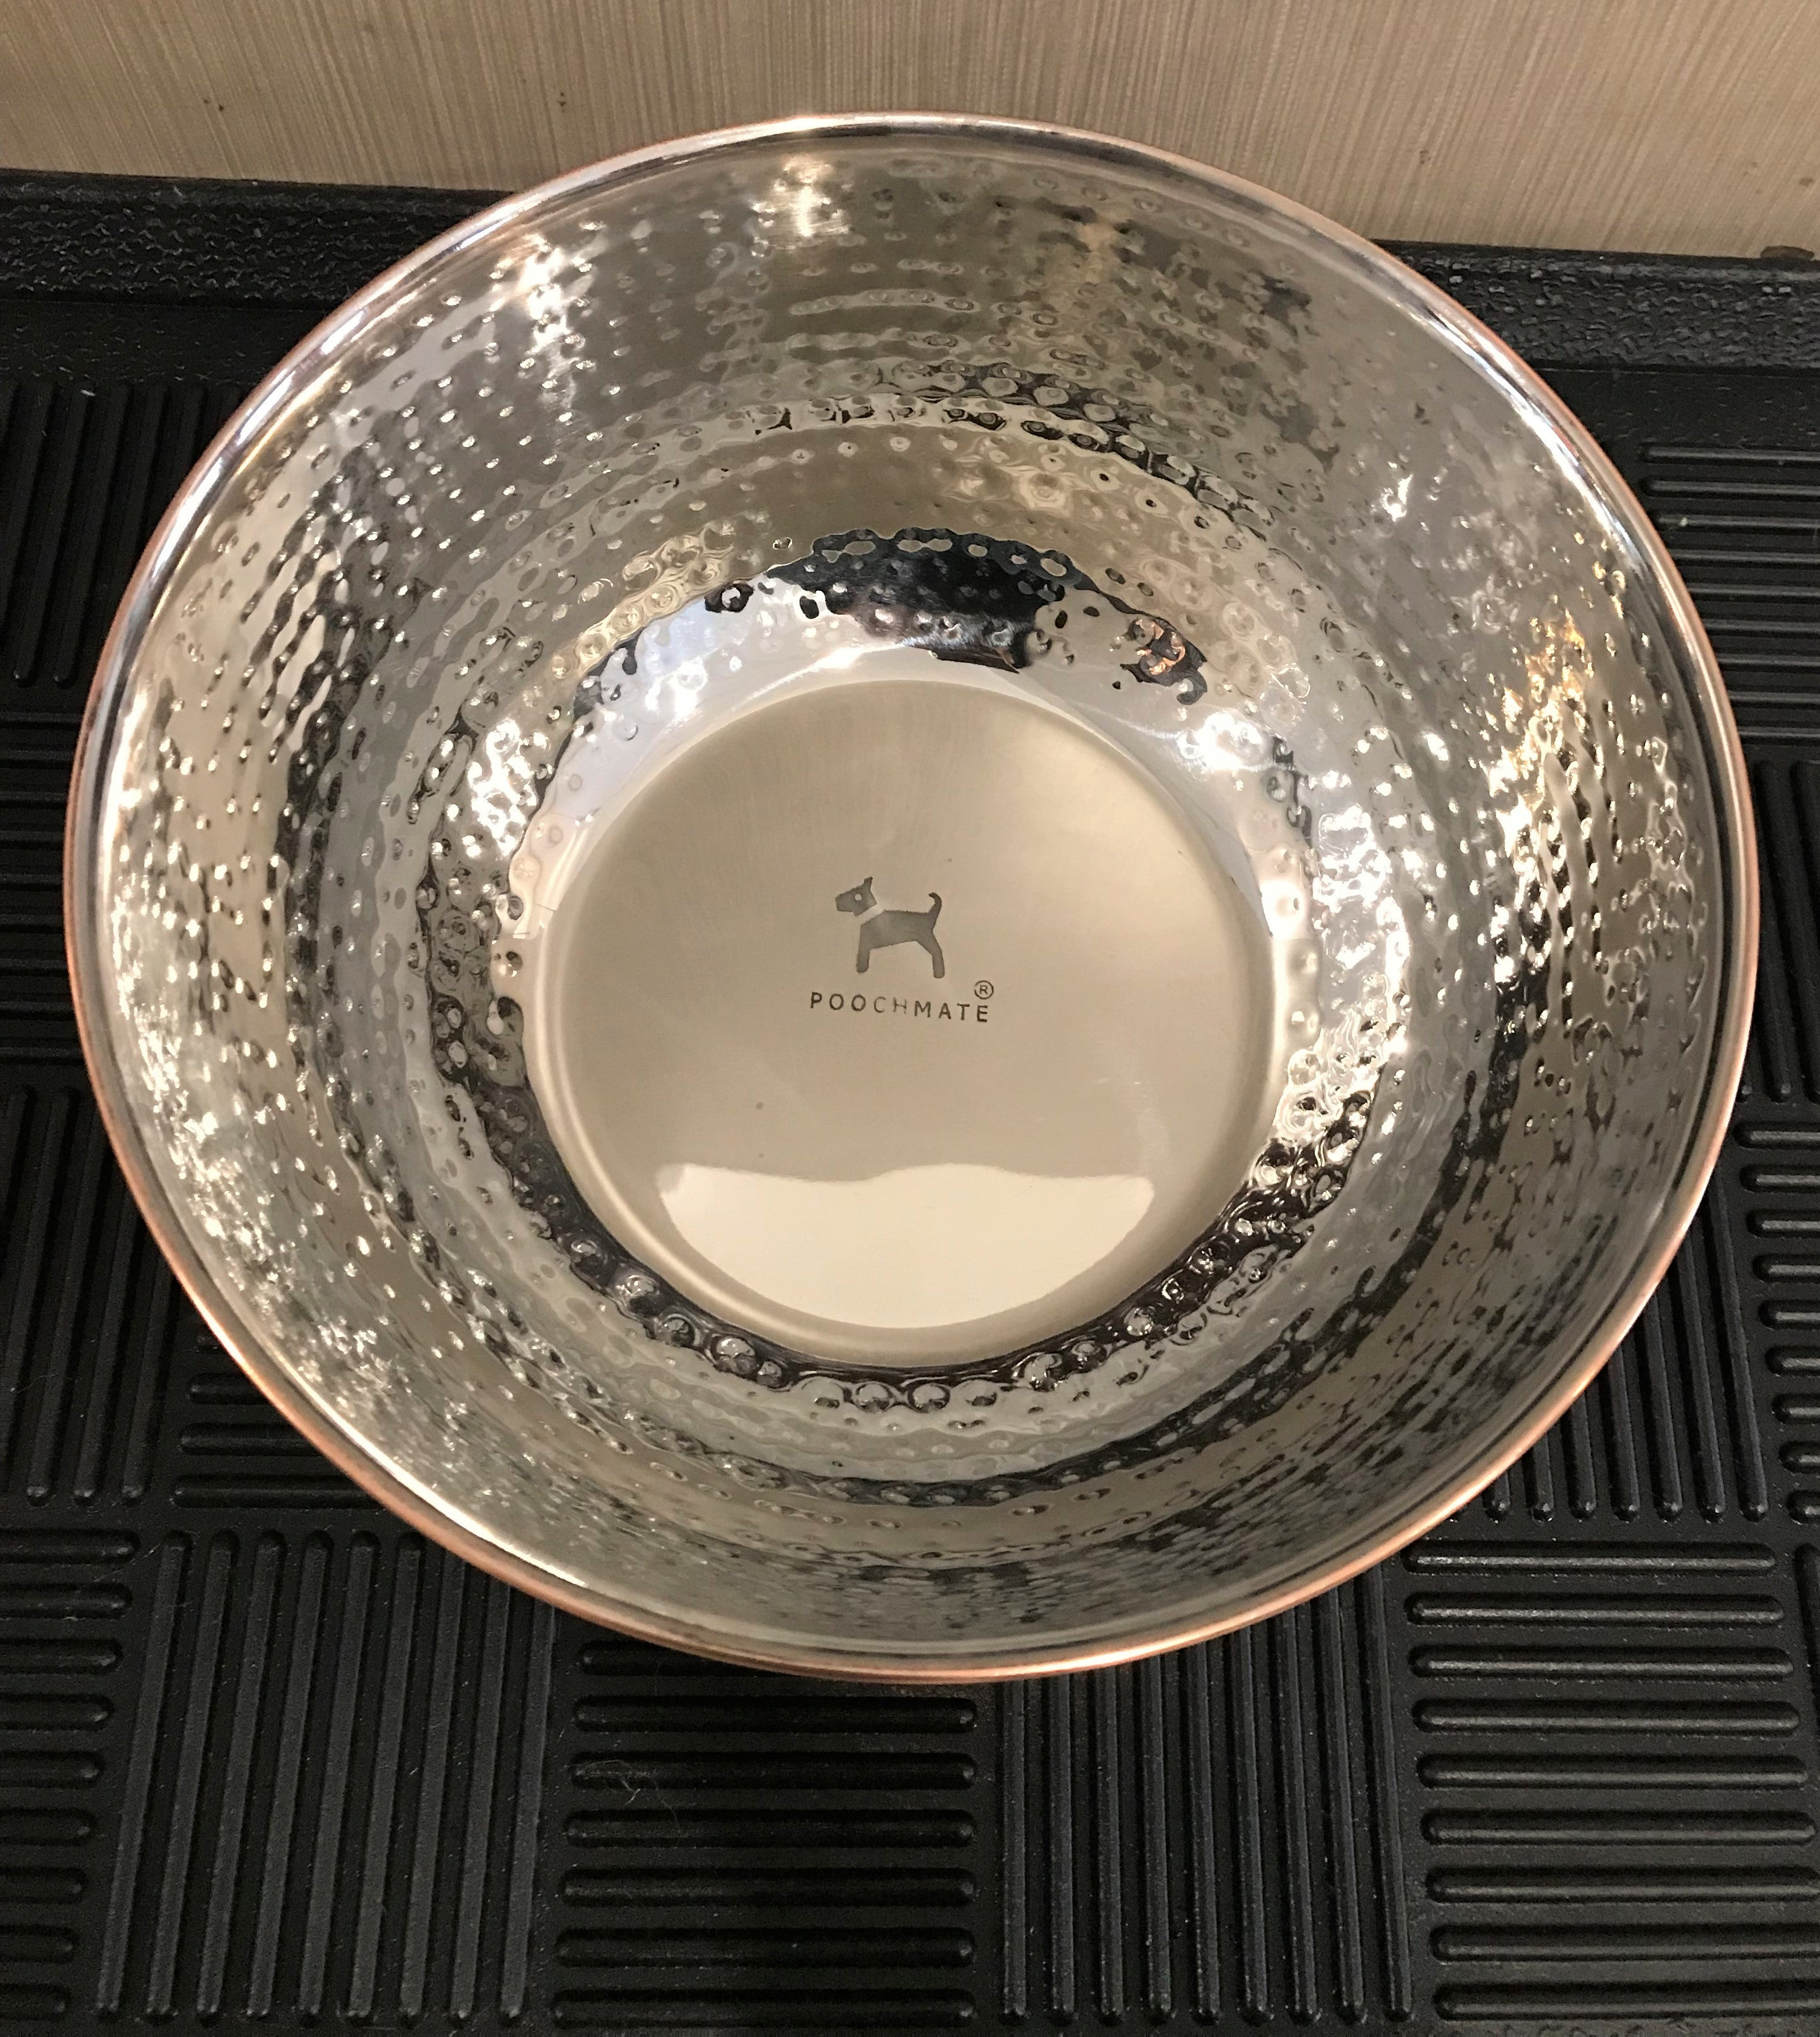 PoochMate Hammered Copper Dog Bowl